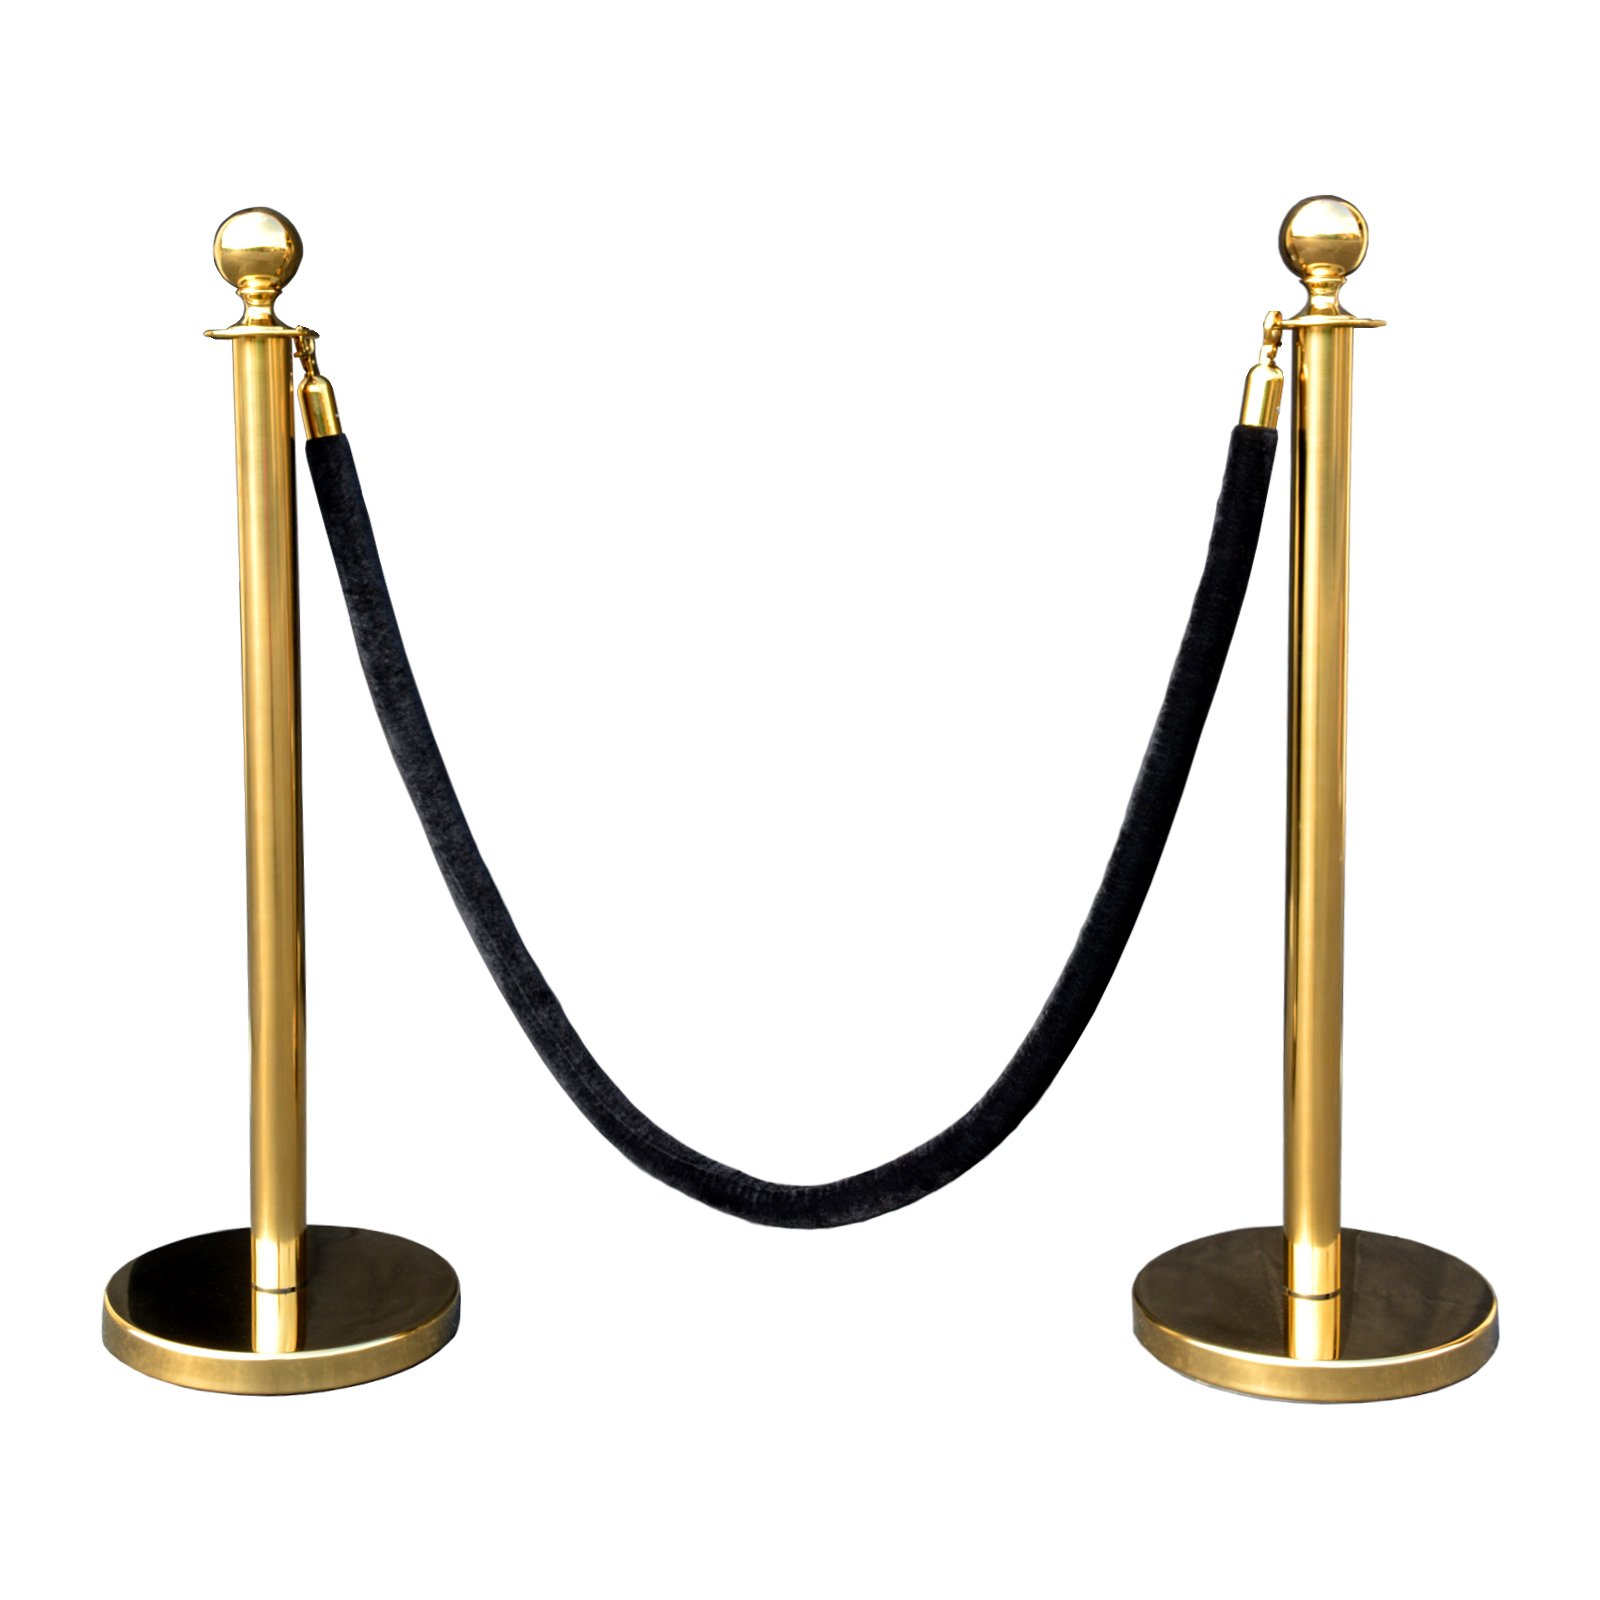 Rope Stanchion Set in 3 PCS, 72'' Black Velour Rope & Crown Top, Gold Finished